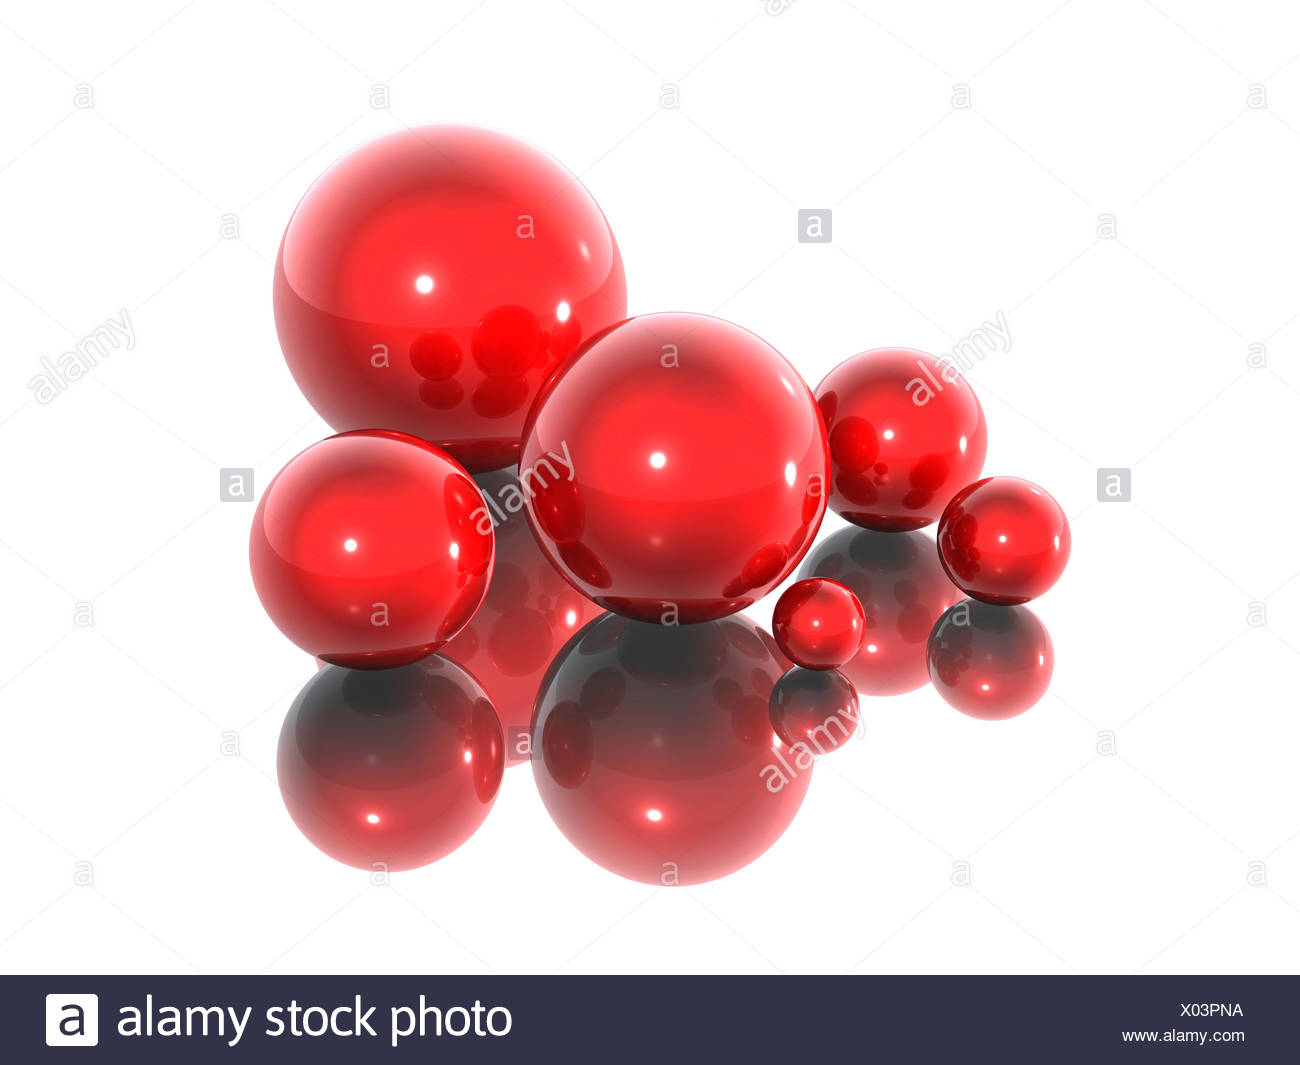 noble artificial ruby group red virtual bowls art mirroring brilliance bright - Stock Image